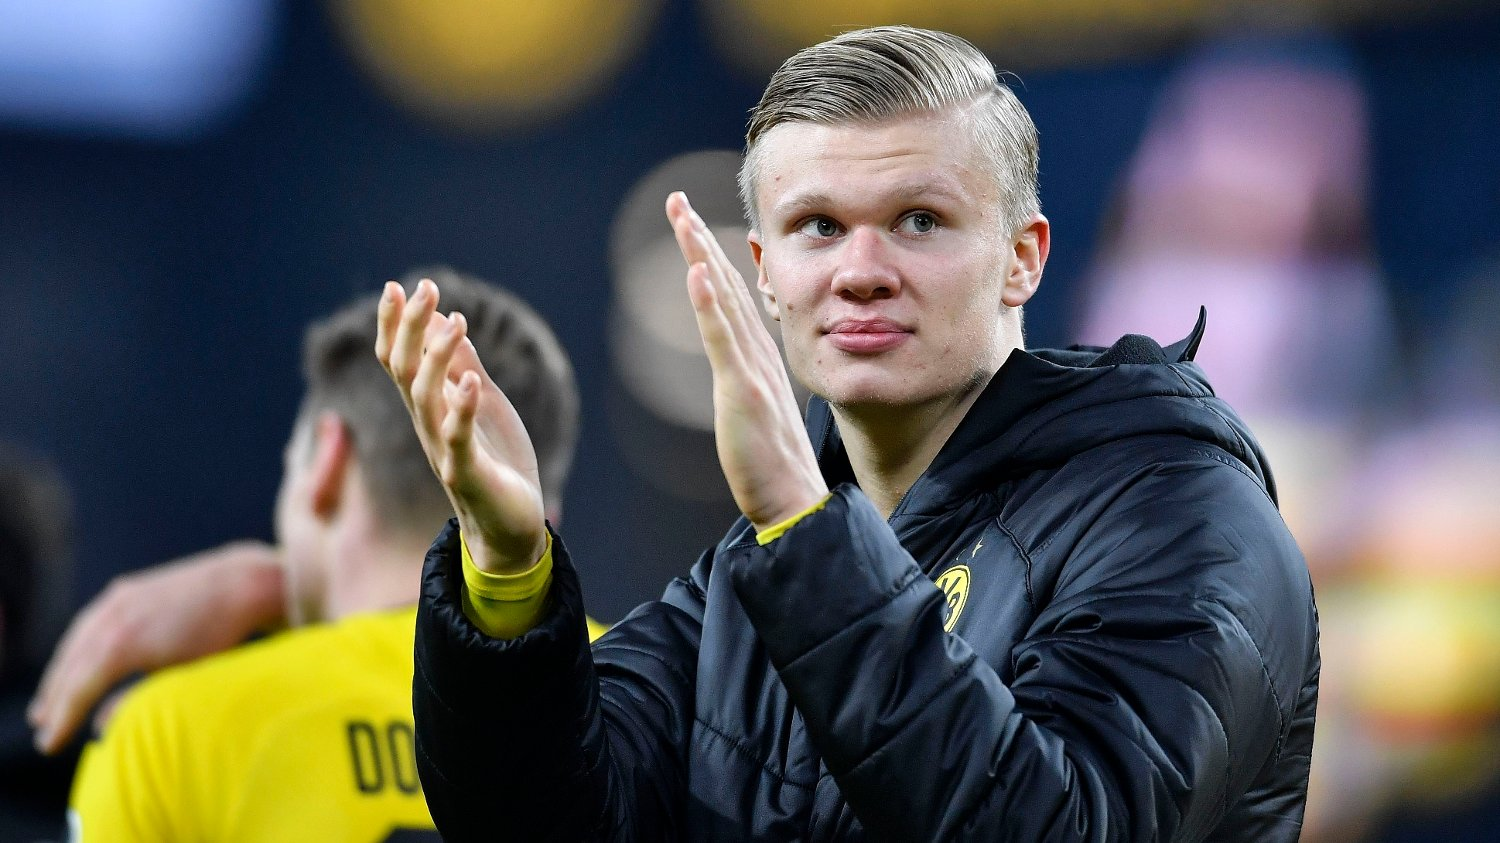 Dortmund's Erling Haaland claps hands to supporters after winning the German Bundesliga soccer match between Borussia Dortmund and Eintracht Frankfurt in Dortmund, Germany, Friday , Feb. 14, 2020.